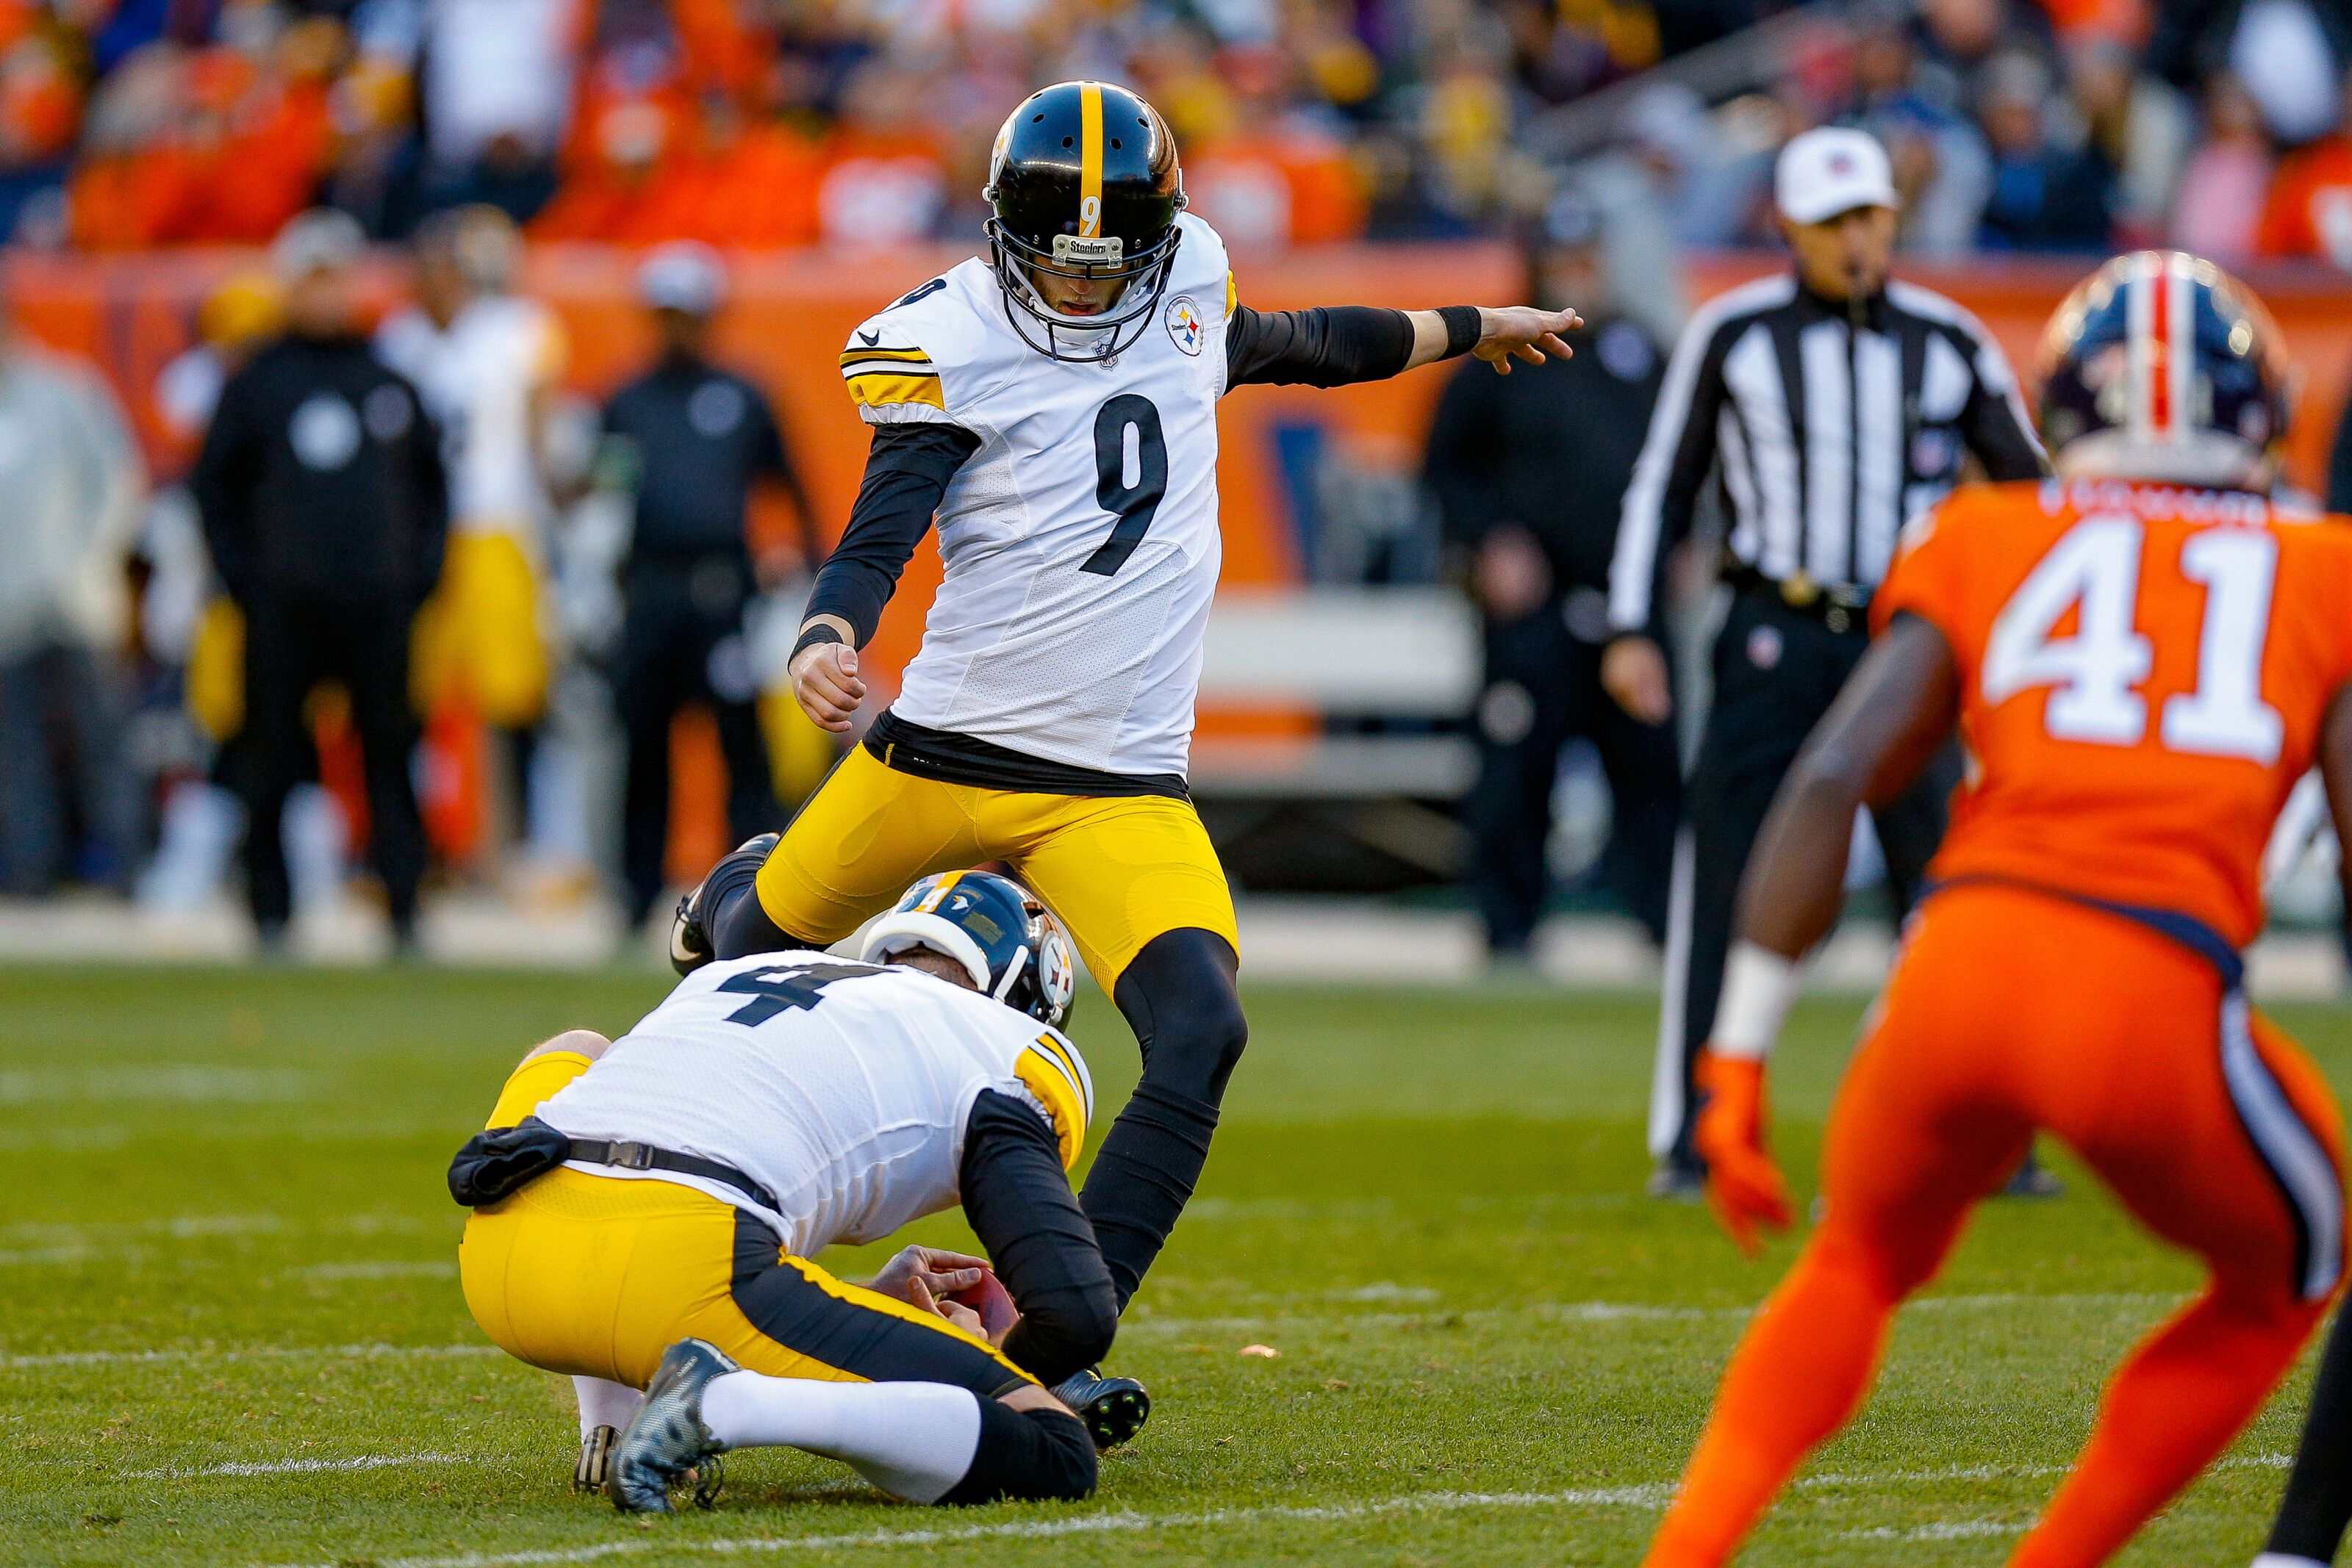 Grading the Steelers special teams heading into the 2019 season